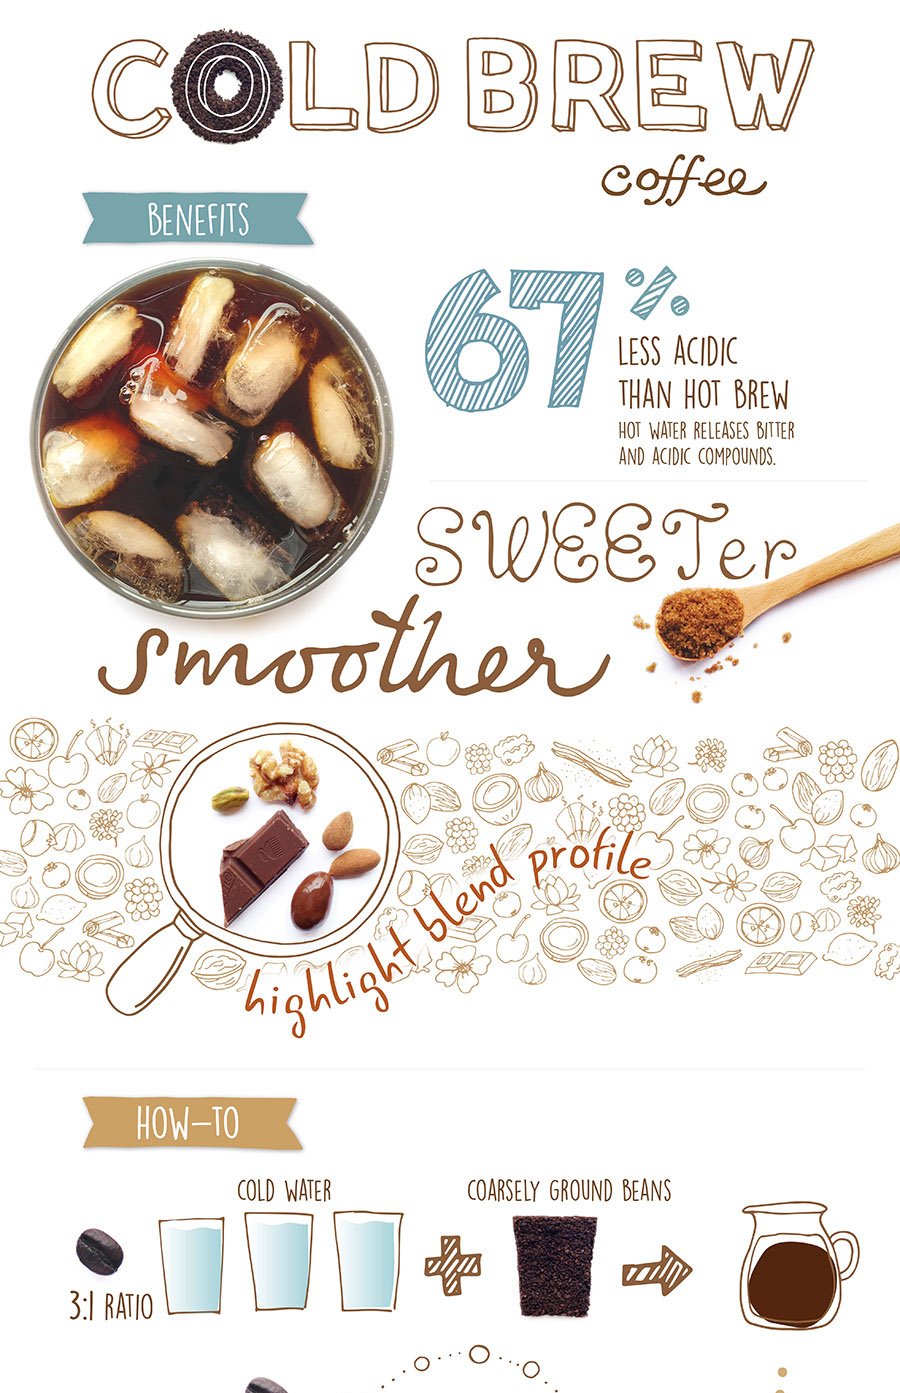 COLD BREW COFFEE RECIPES & BENEFITS INFOGRAPHIC